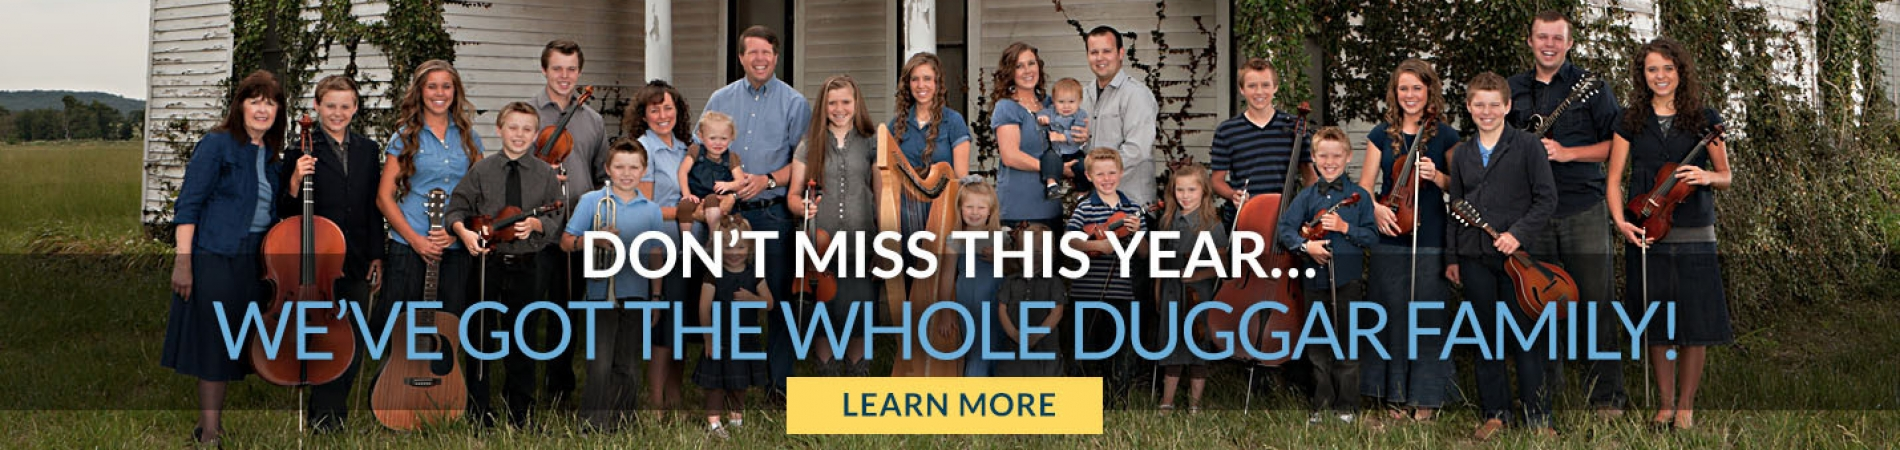 slider_duggar_family-1900x450_c